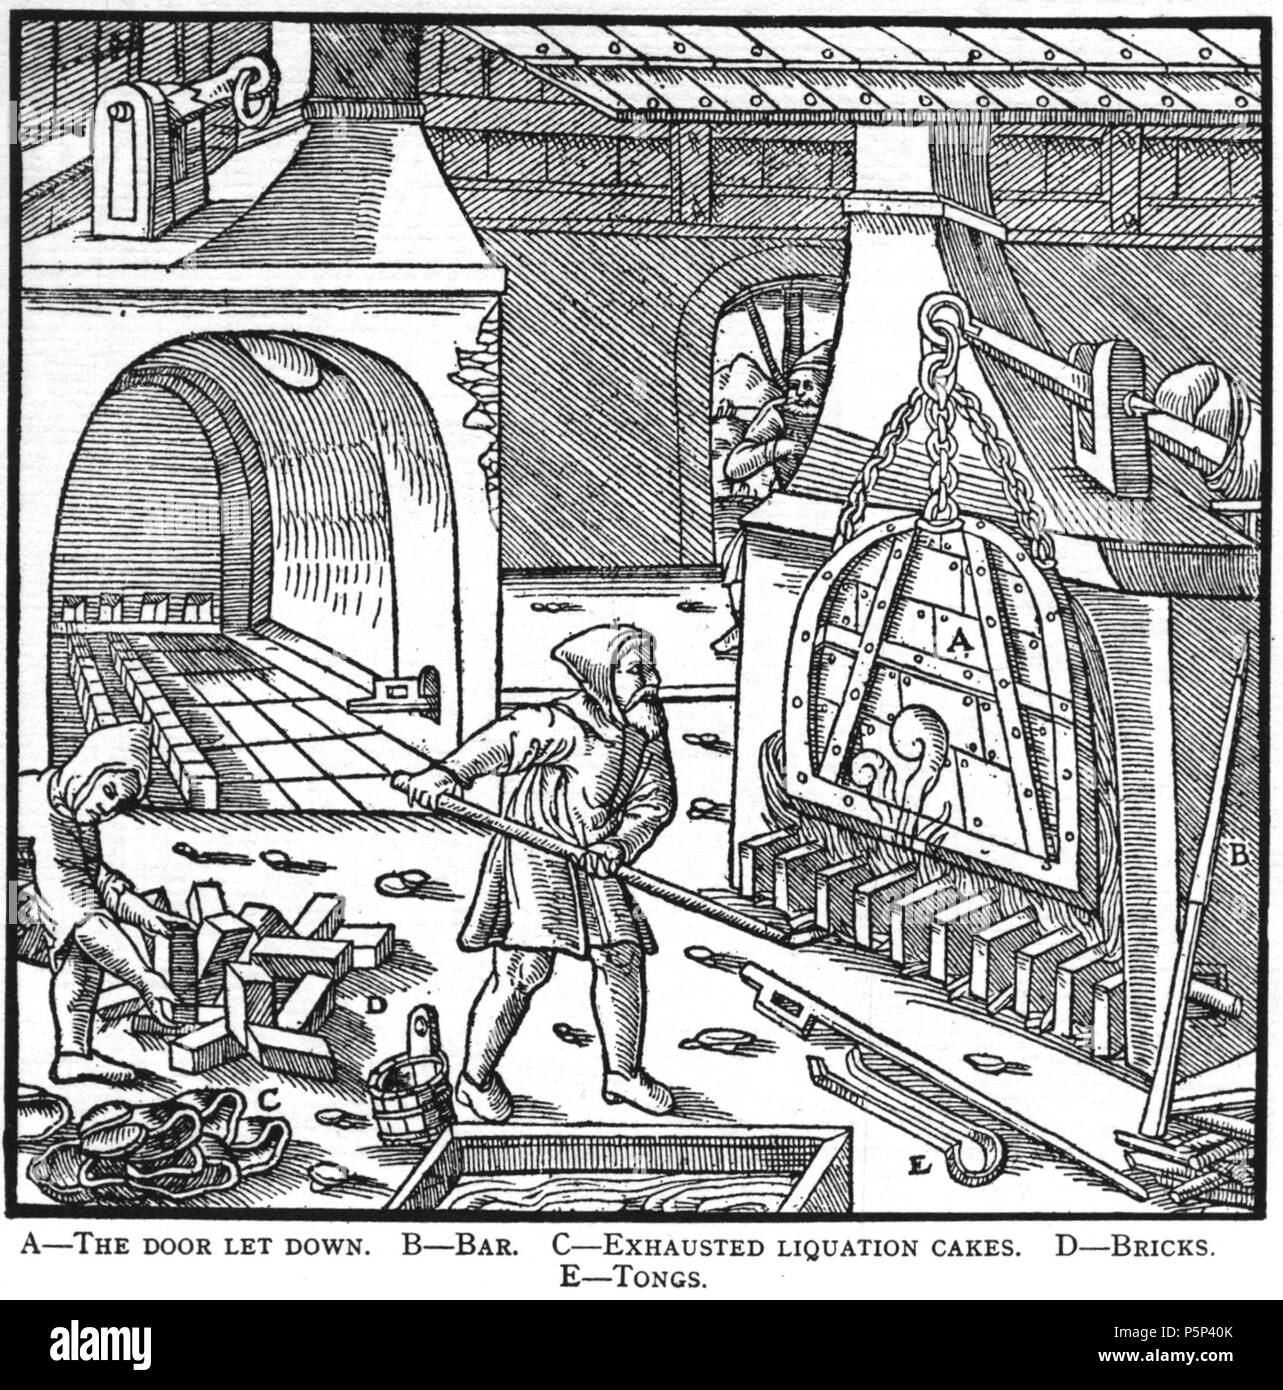 N/A. Woodcut illustration from De re metallica by Georgius Agricola. This is a 300dpi scan from the 1950 Dover edition of the 1913 Hoover translation of the 1556 reference. The Dover edition has slightly smaller size prints than the Hoover (which is a rare book). The woodcuts were recreated for the 1913 printing. Filenames (except for the title page) indicate the chapter (2, 3, 5, etc.) followed by the sequential number of the illustration. 2 May 2005, 06:55:48. TCO (talk) 222 Book11-12 Stock Photo